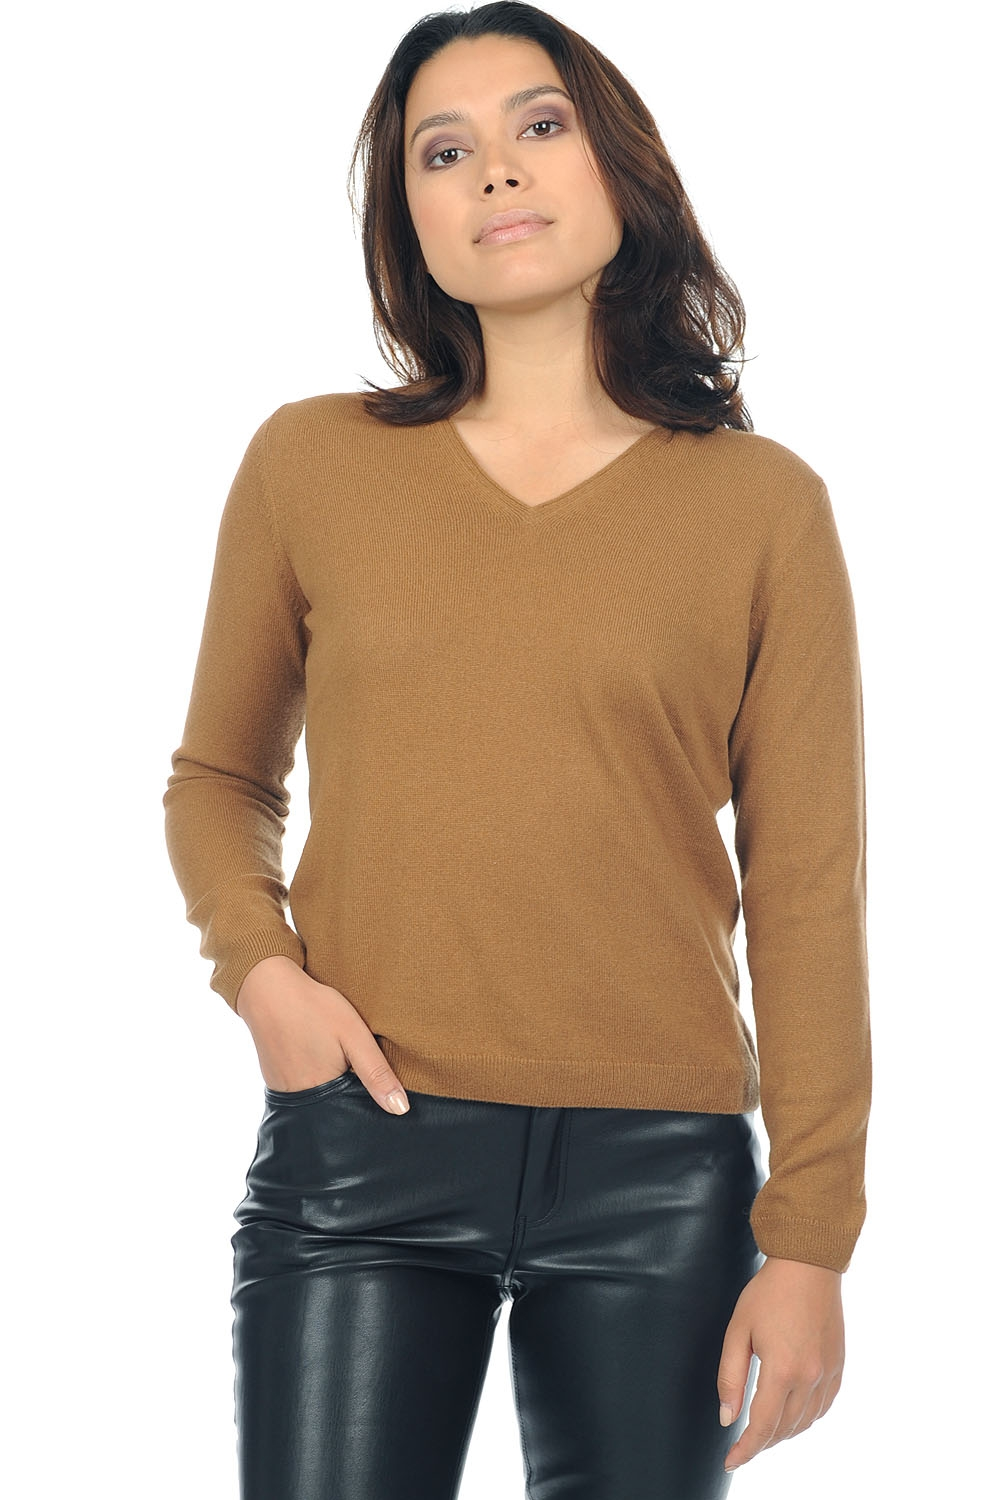 Vicuna ladies v necks vicunashe natural vicuna s